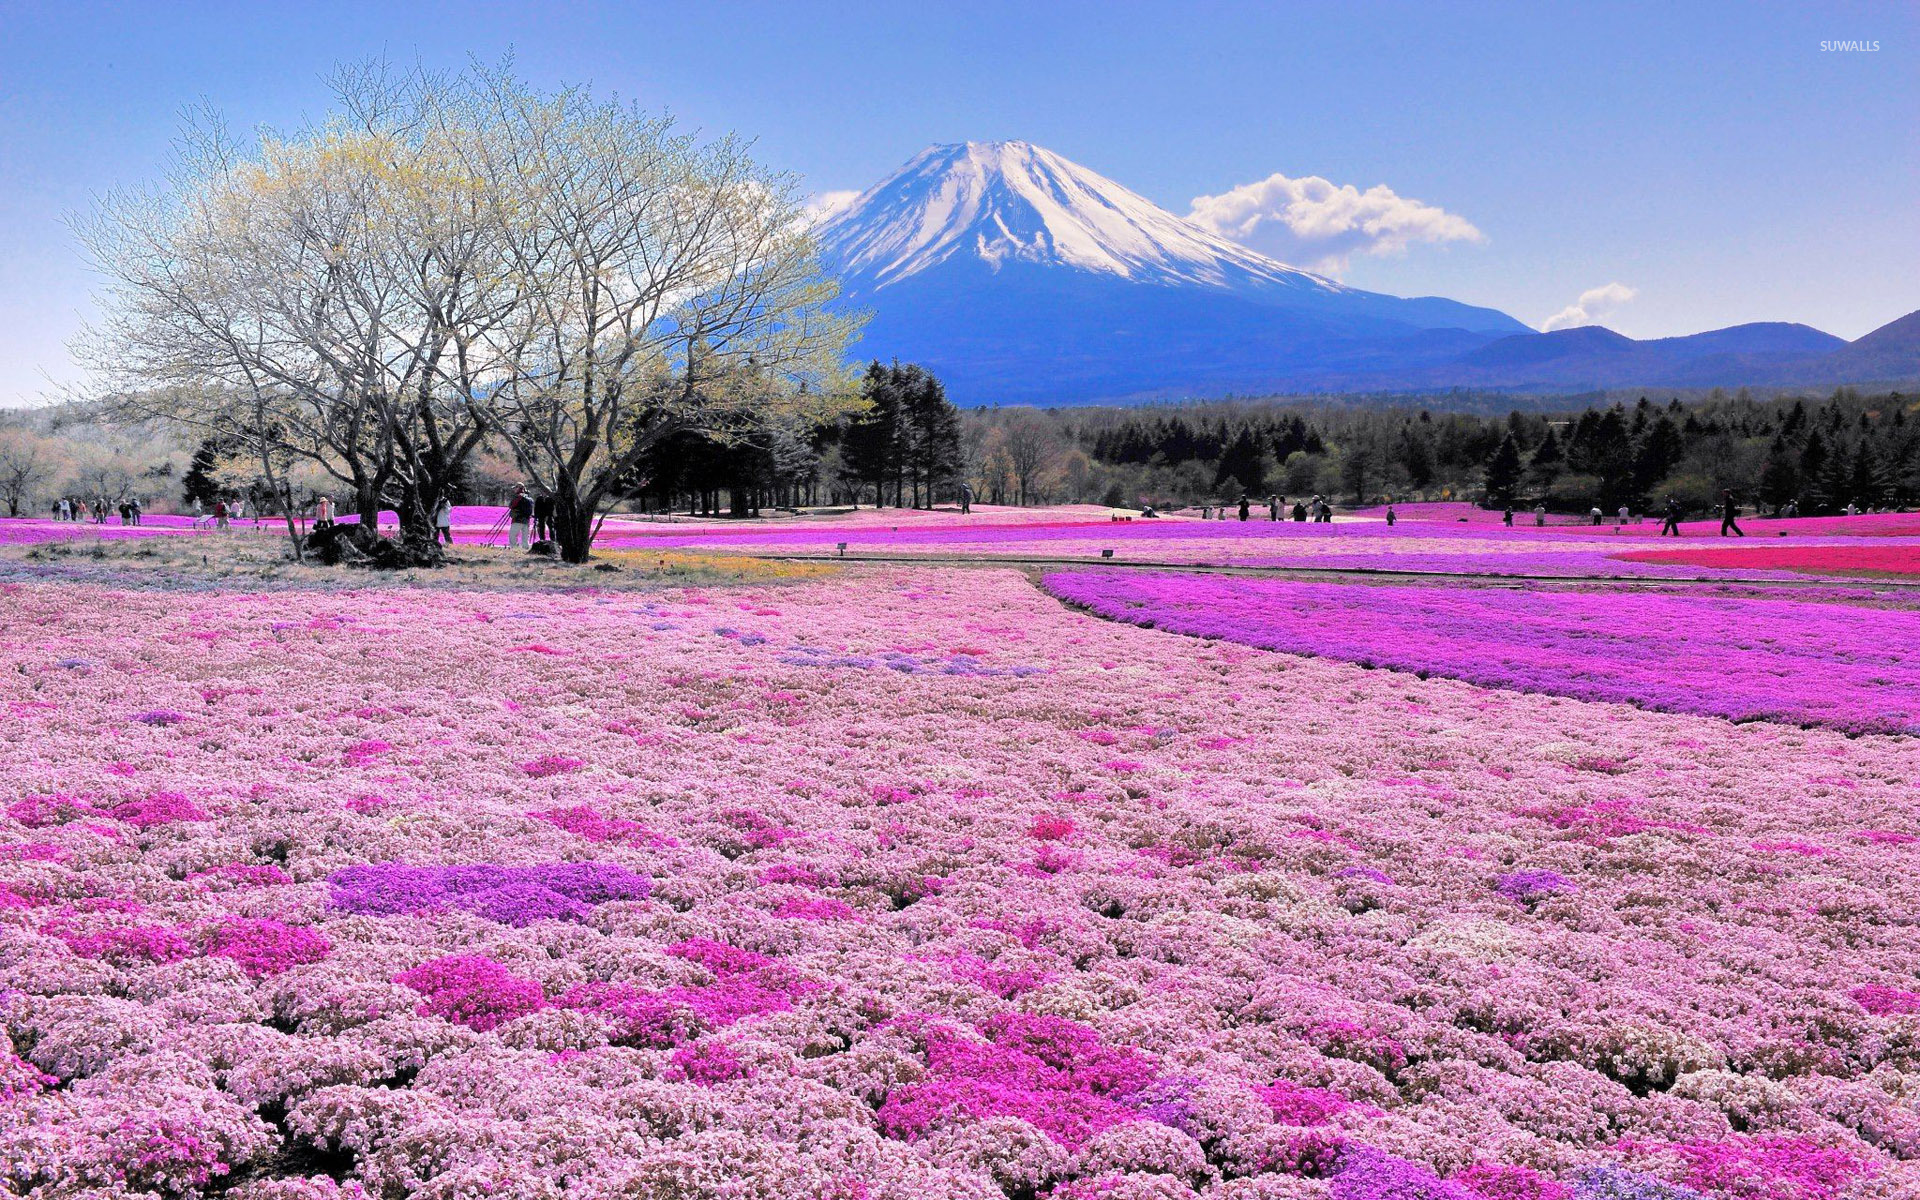 Pink-flower-field-and-mount-fuji-1920×1200